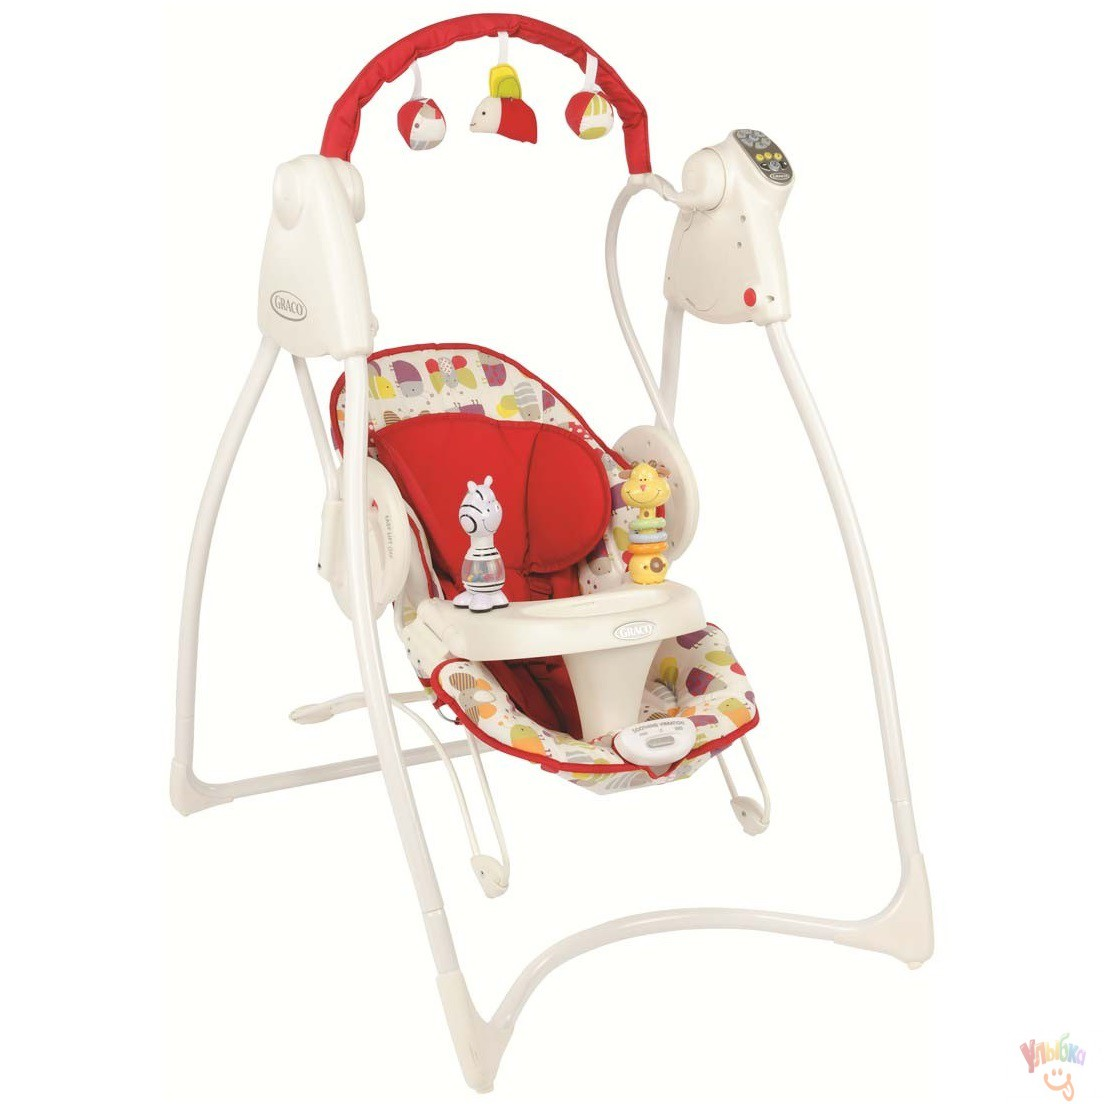 Graco Кресло-качалка  Swing n Bounce Garden Friends GRACO